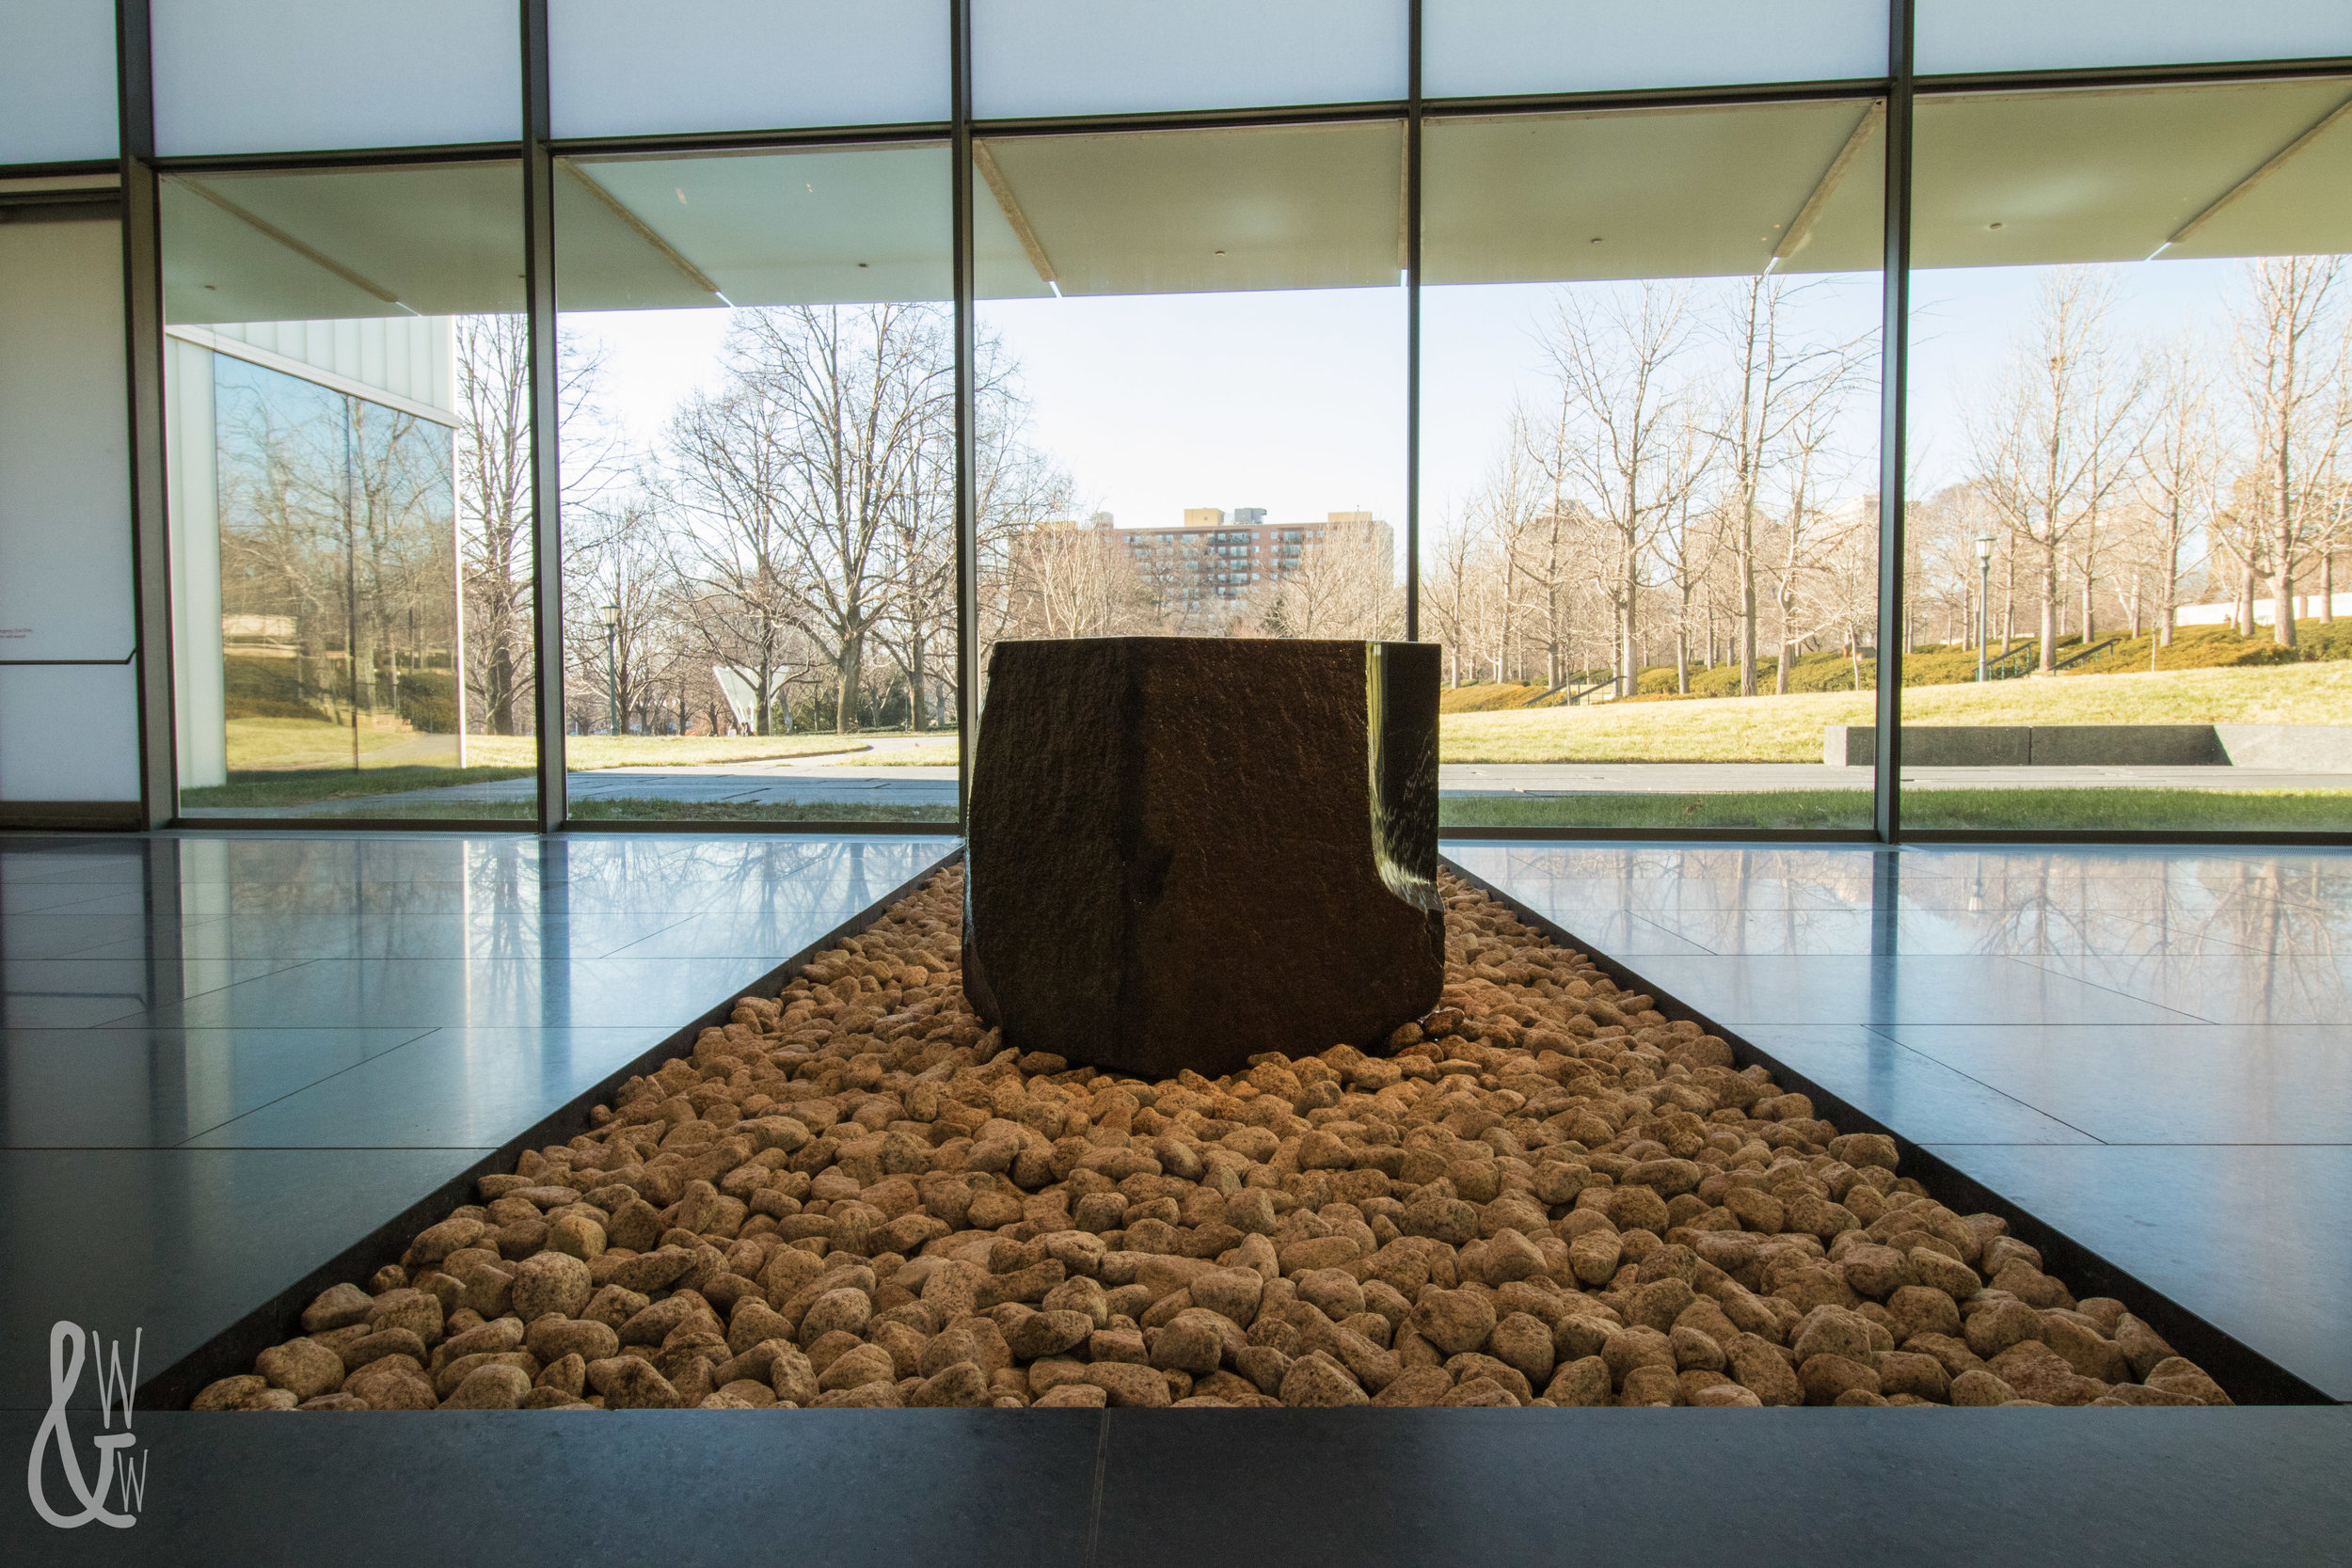 When it's too cold outside for winter photography, take the camera indoors! The Nelson-Atkins Museum in Kansas City is a prime location.